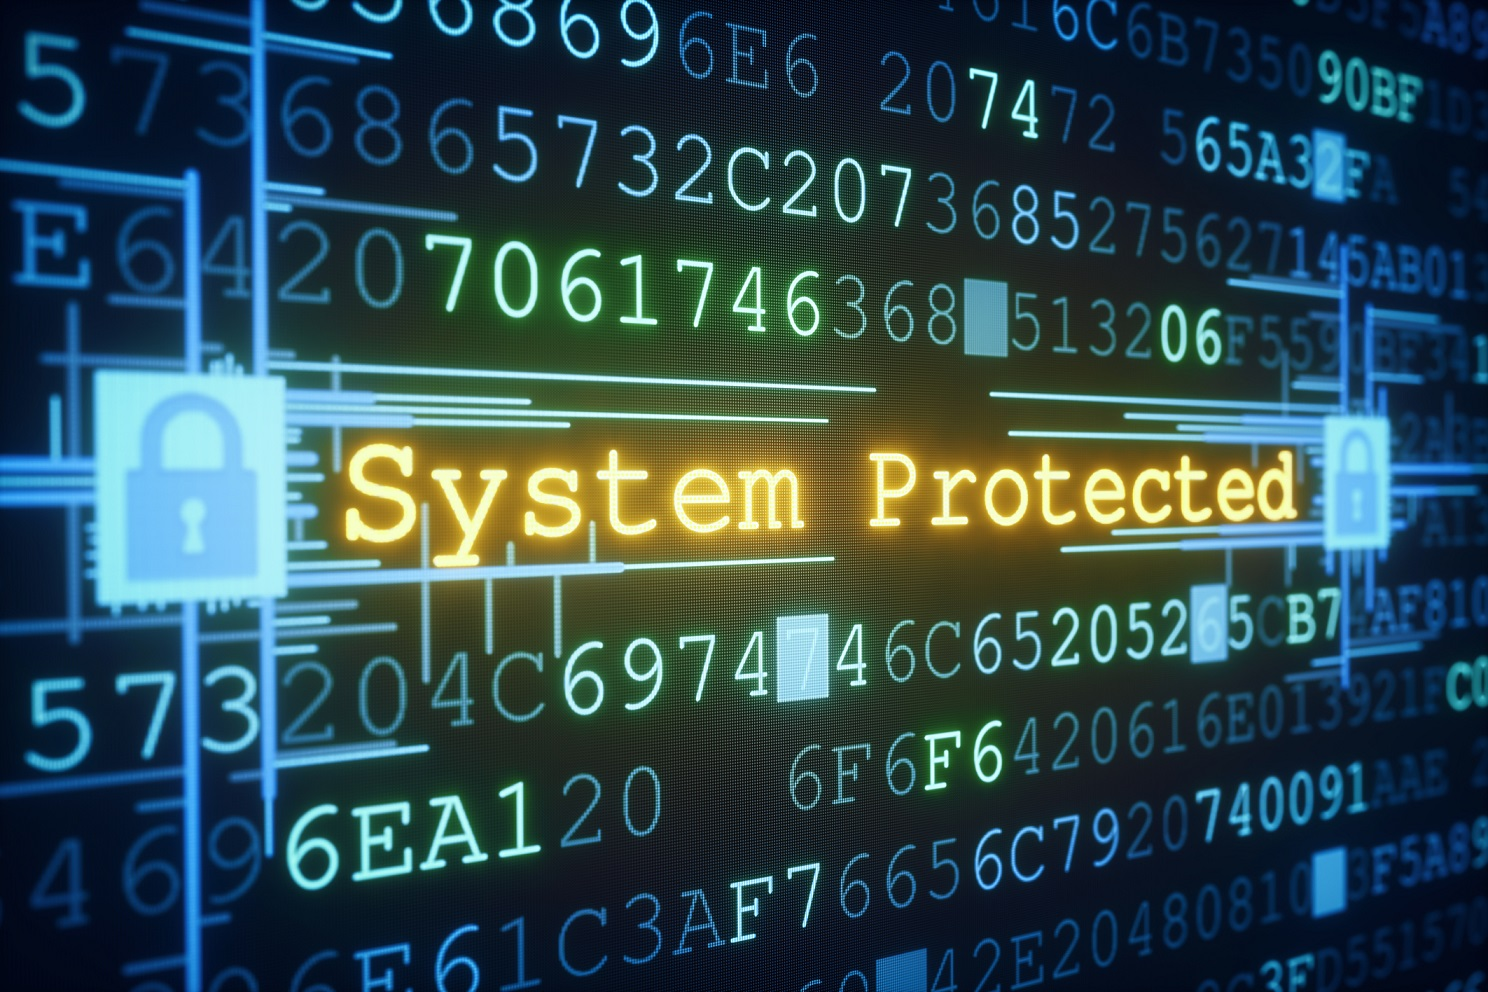 System Protection A01